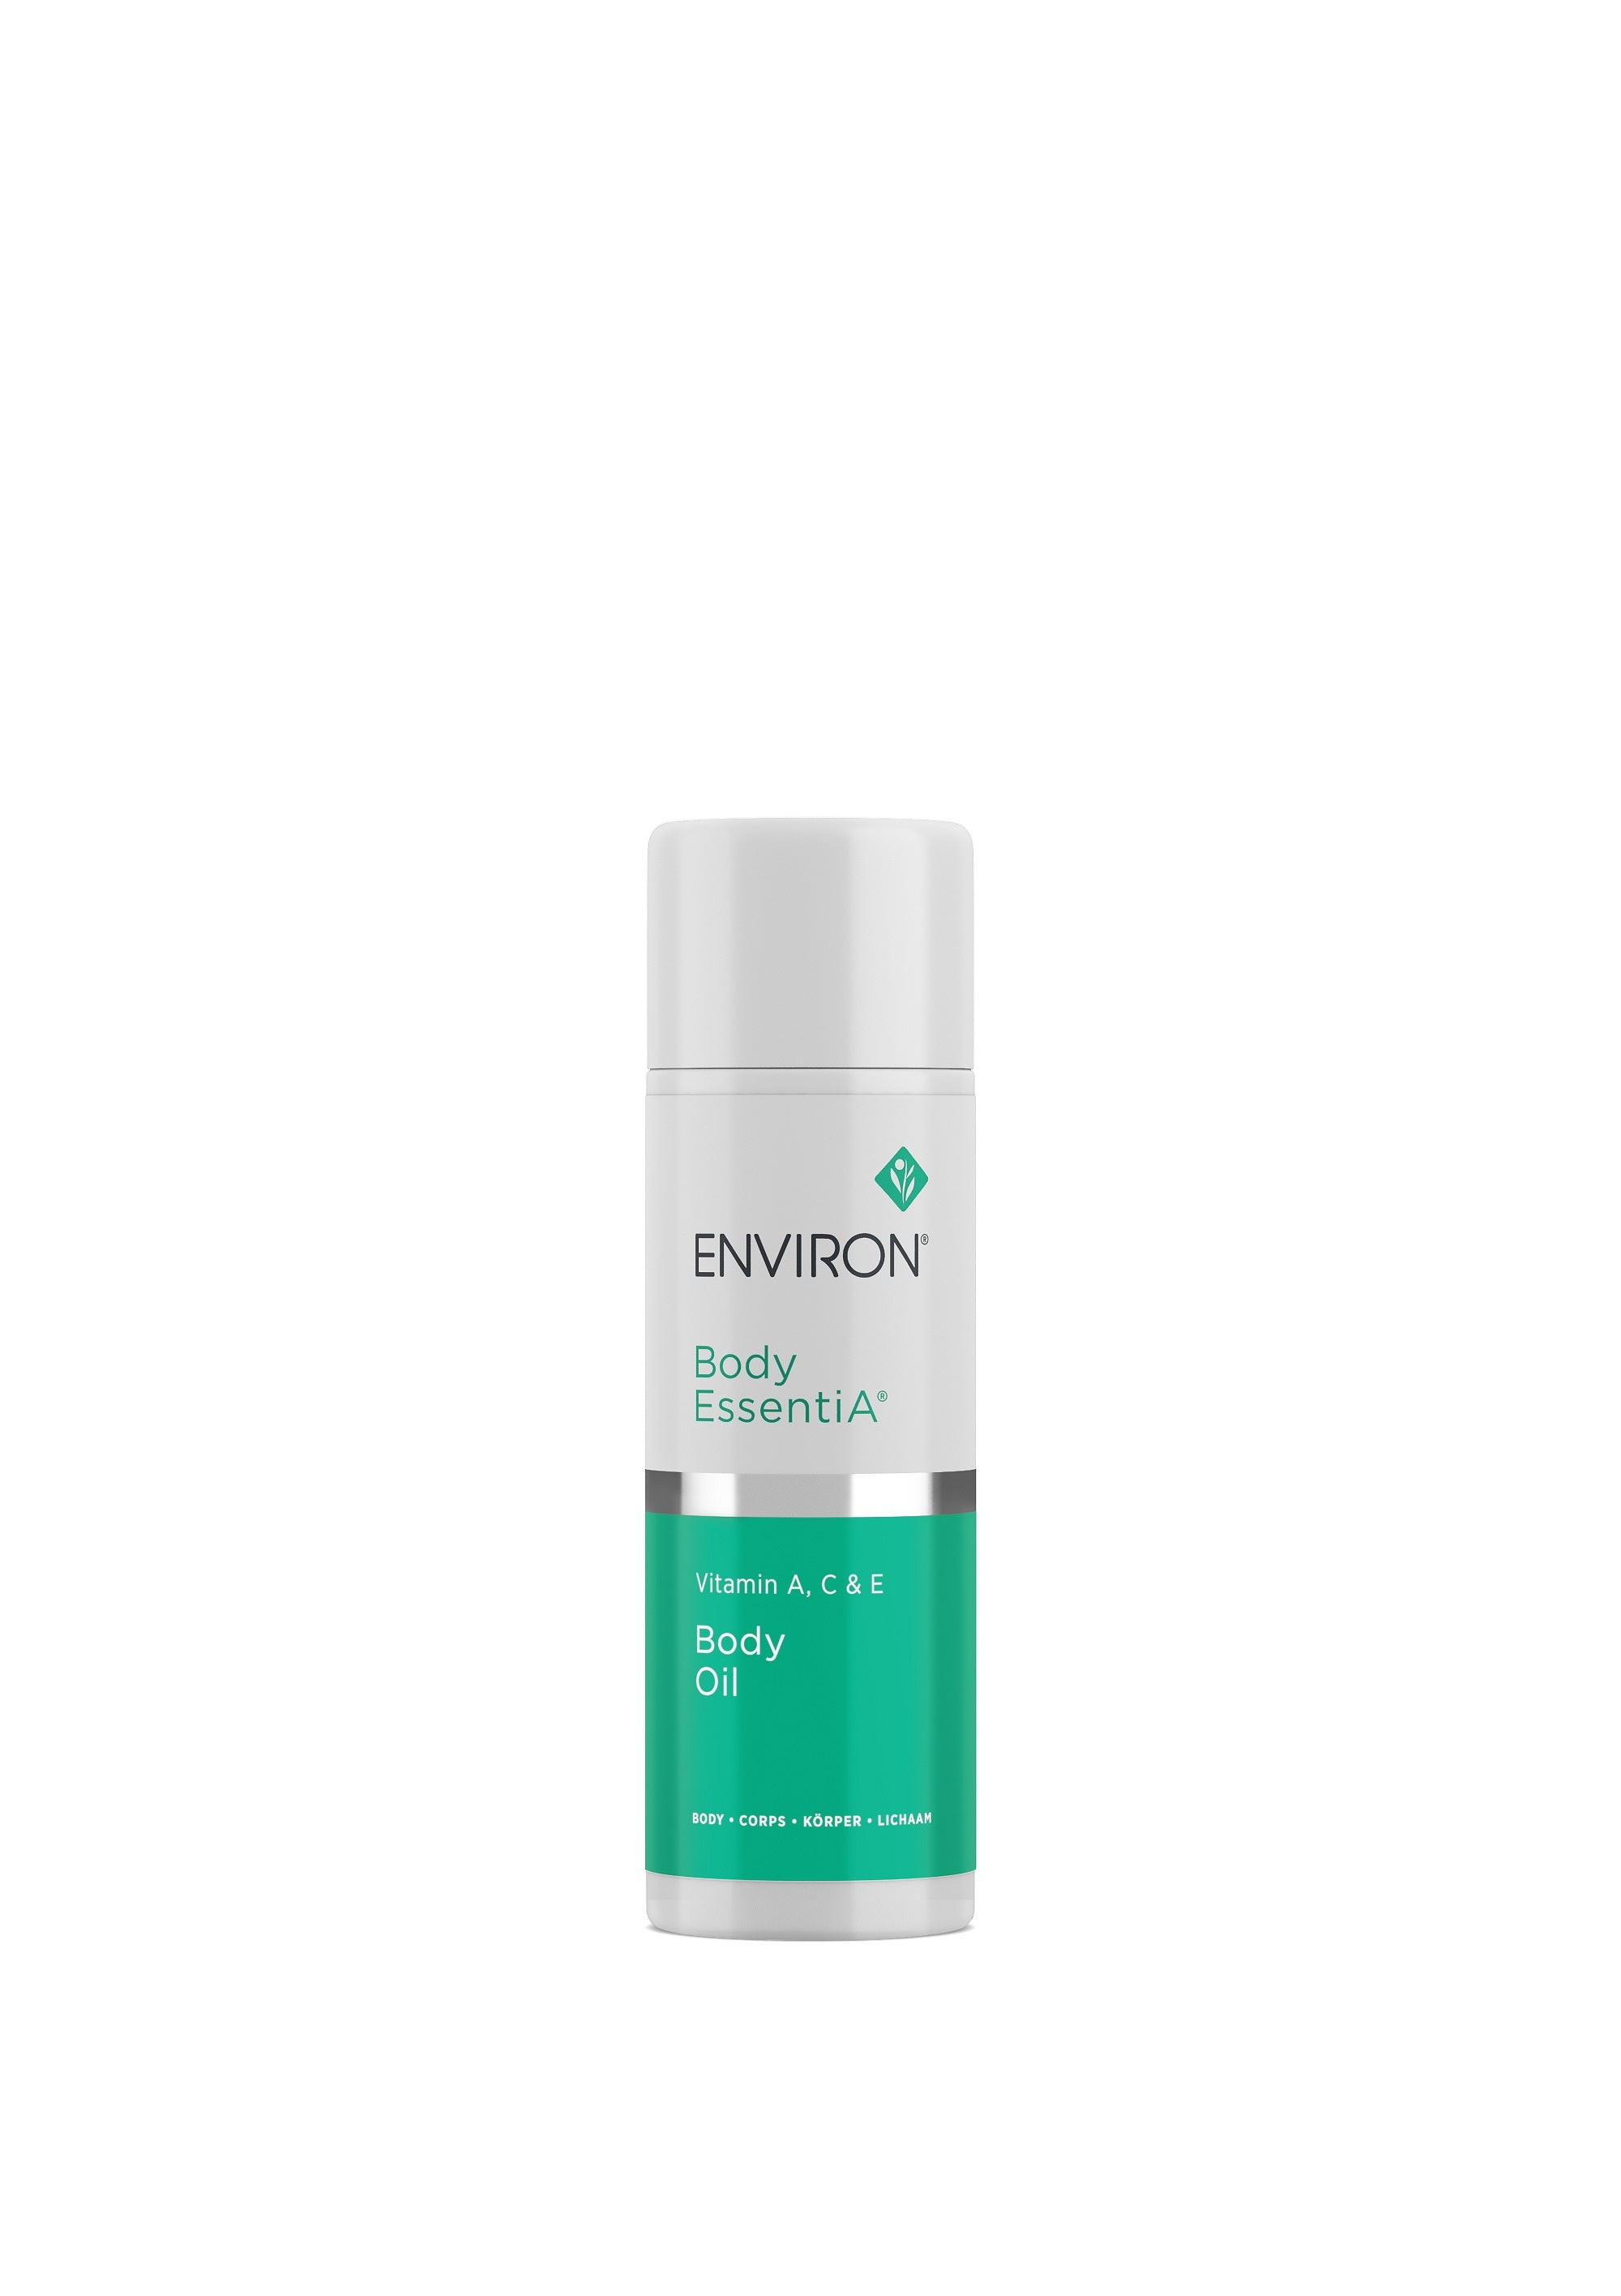 Body EssentiA Vitamin A, C & E Body Oil Environ